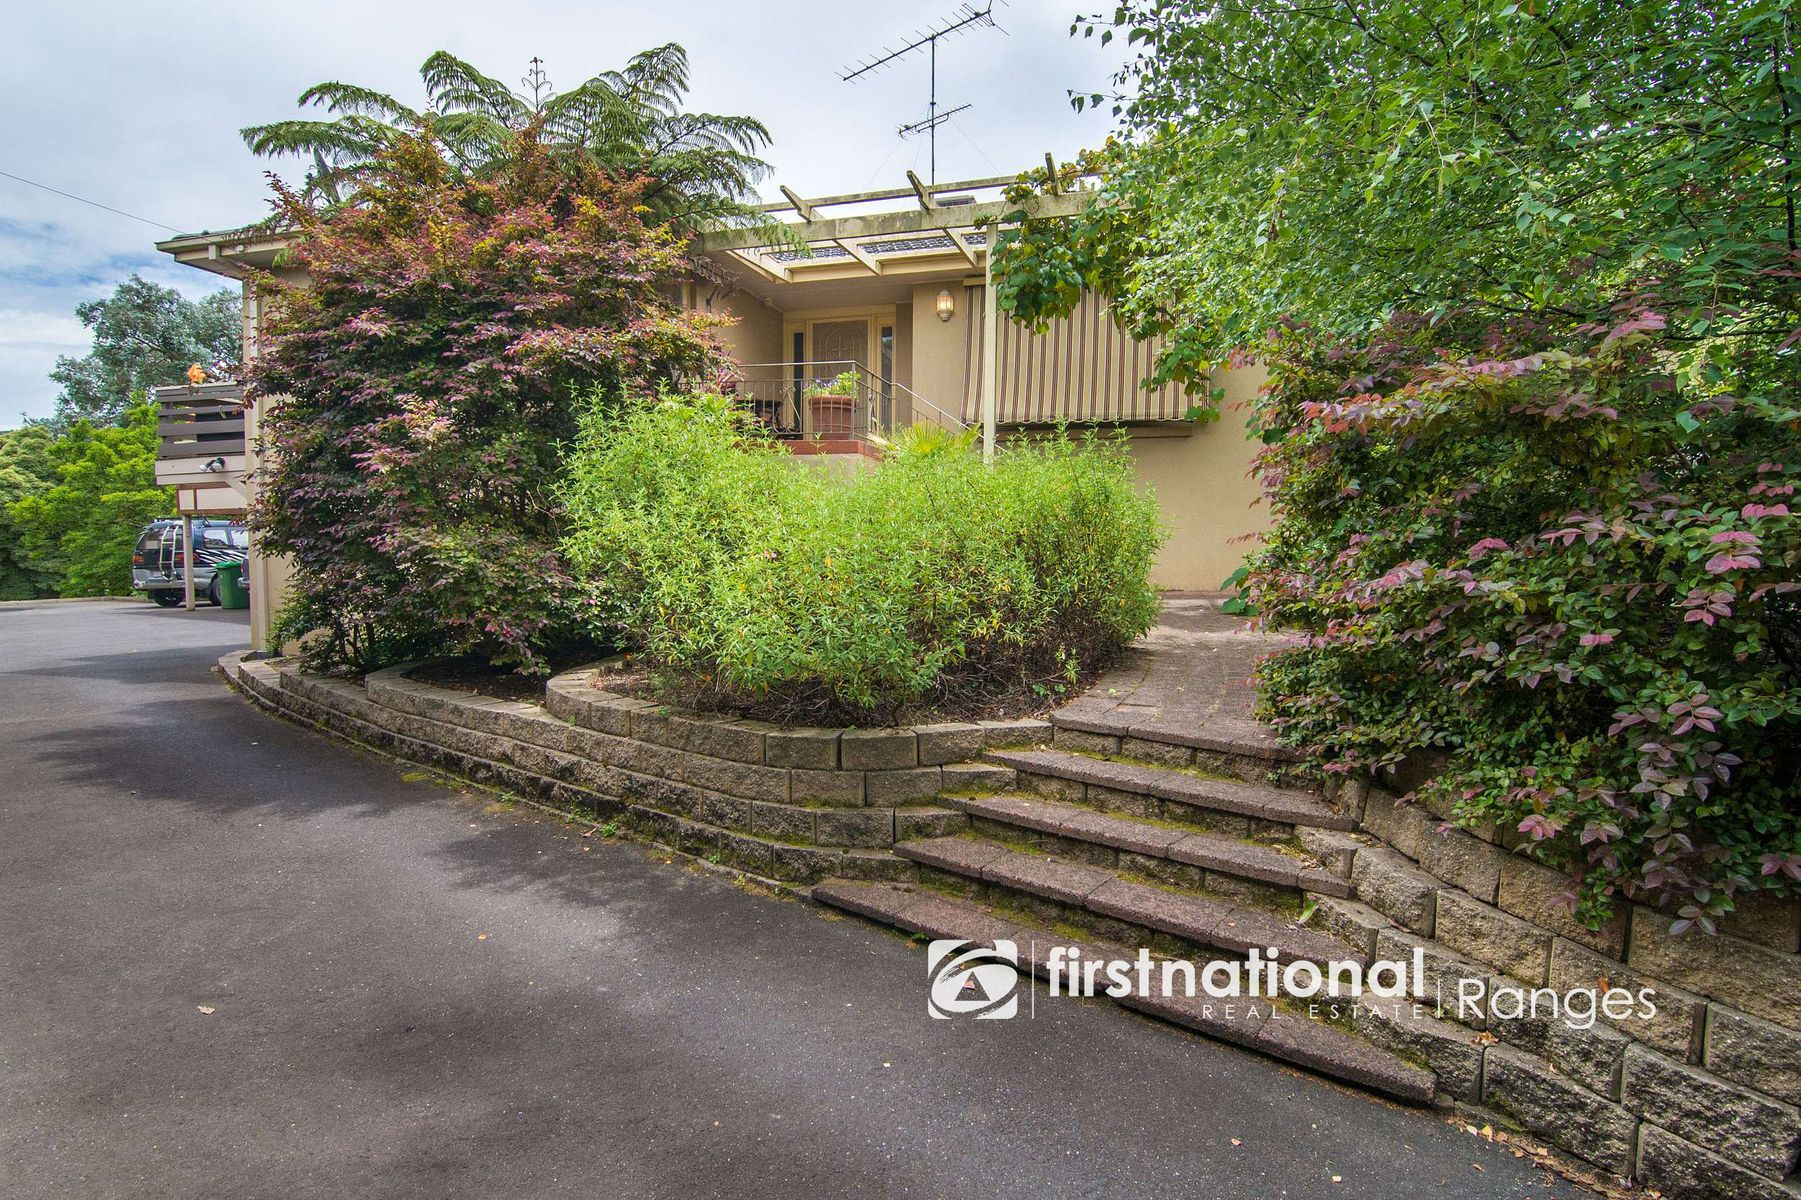 33 Moores Road, Monbulk, VIC 3793